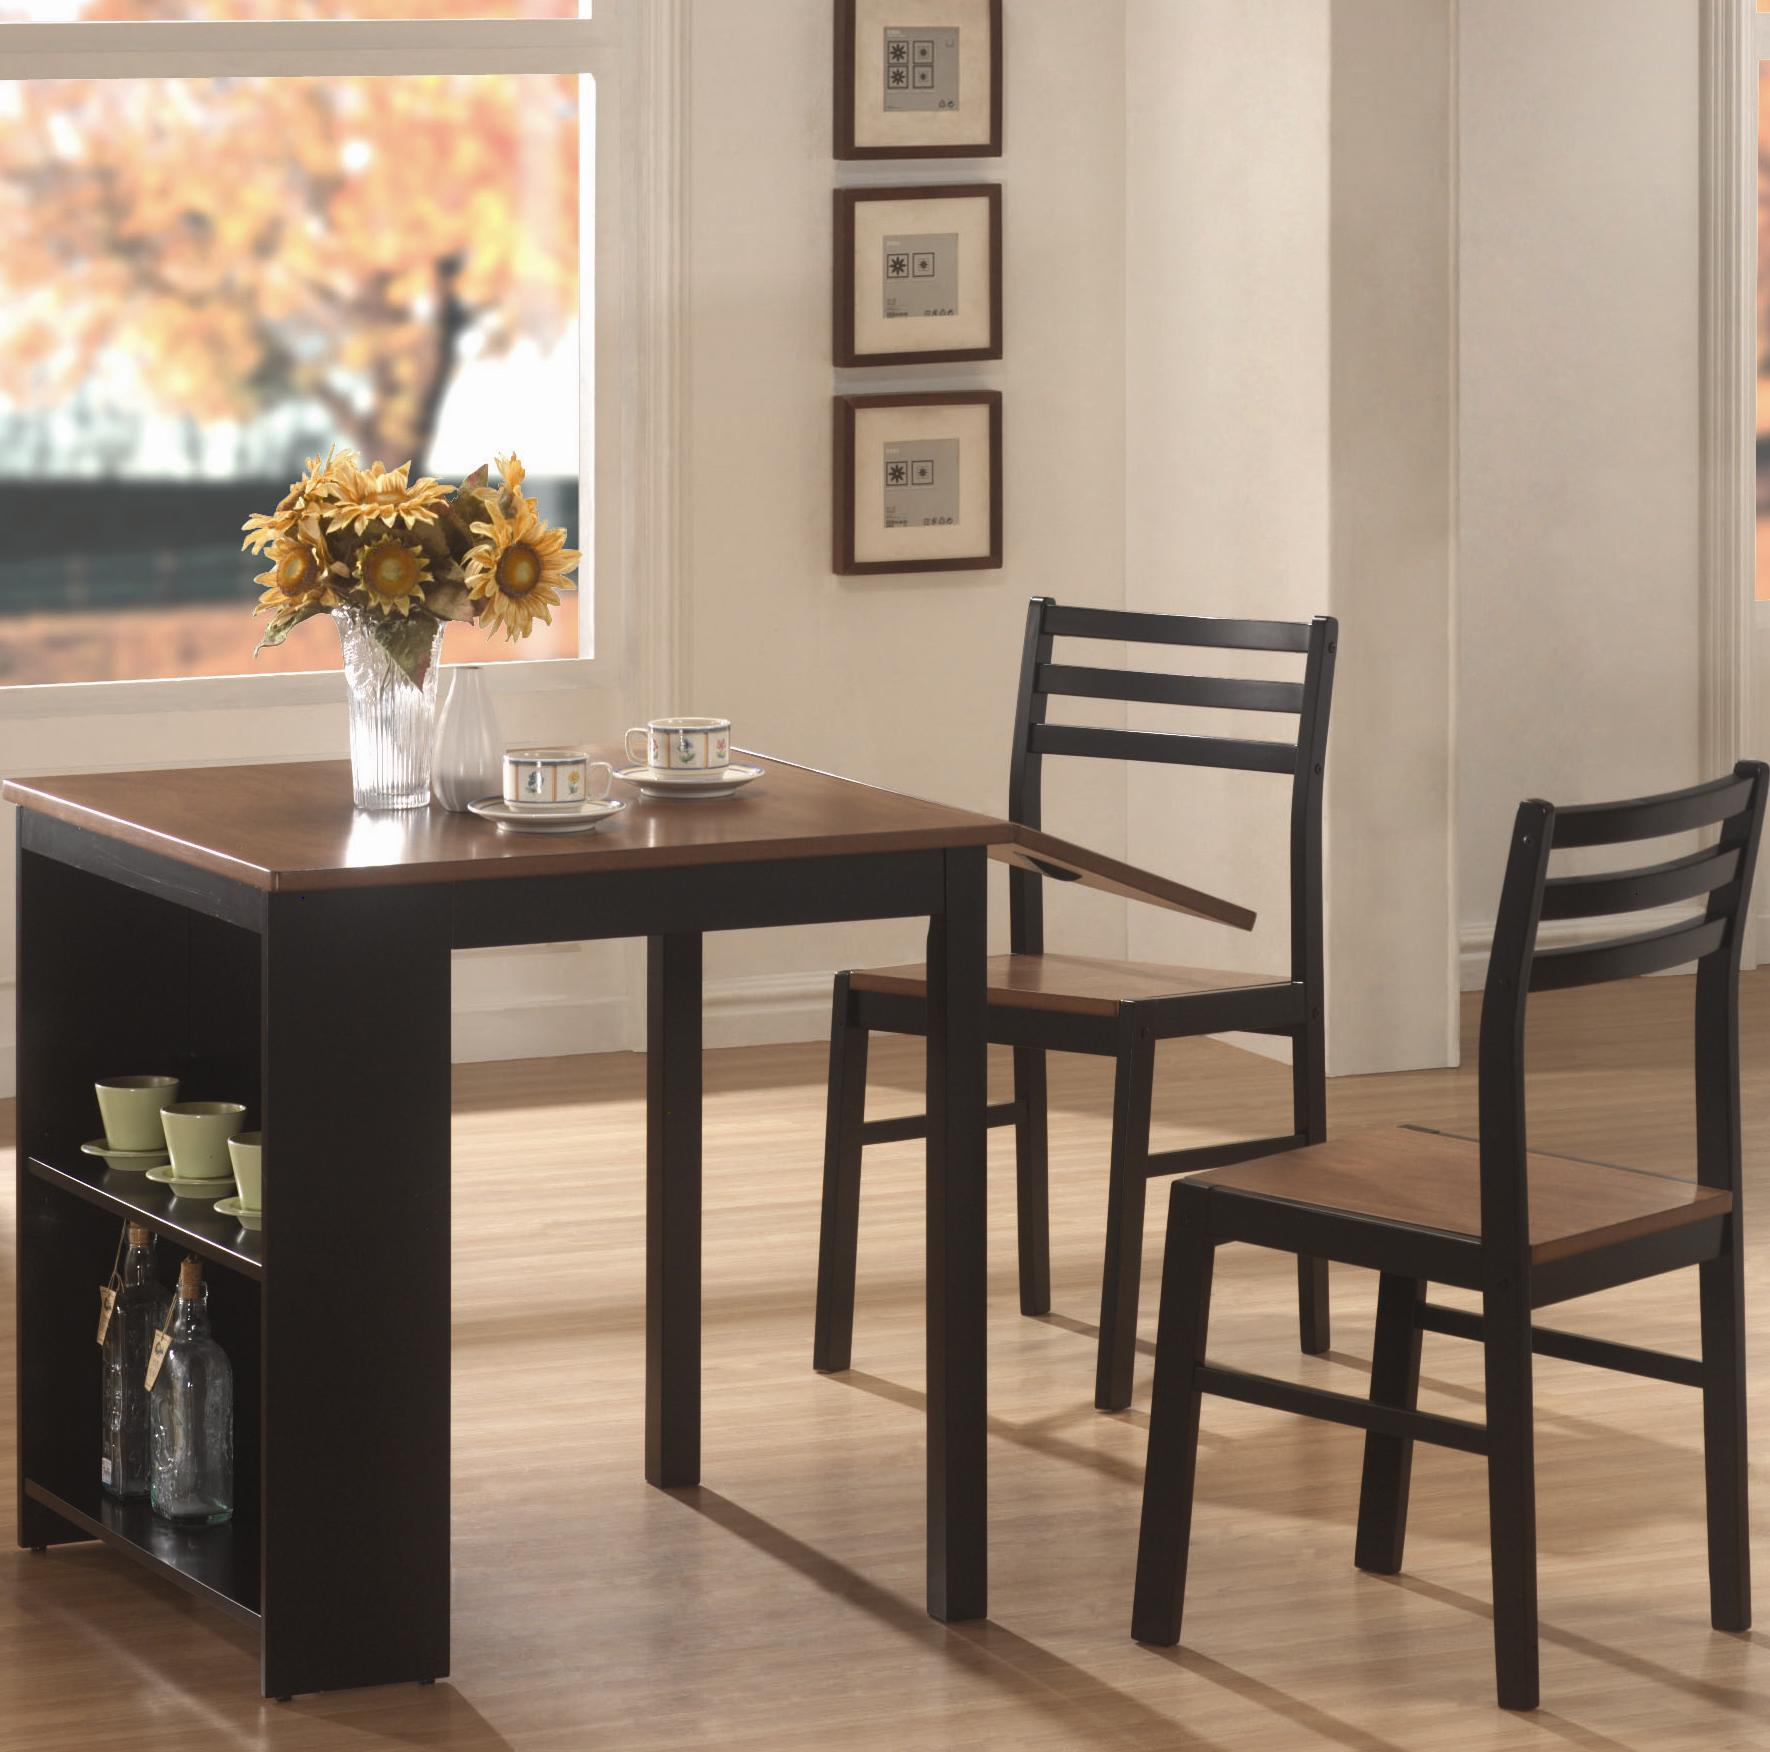 Dining Sets Archives - Affordable Portables